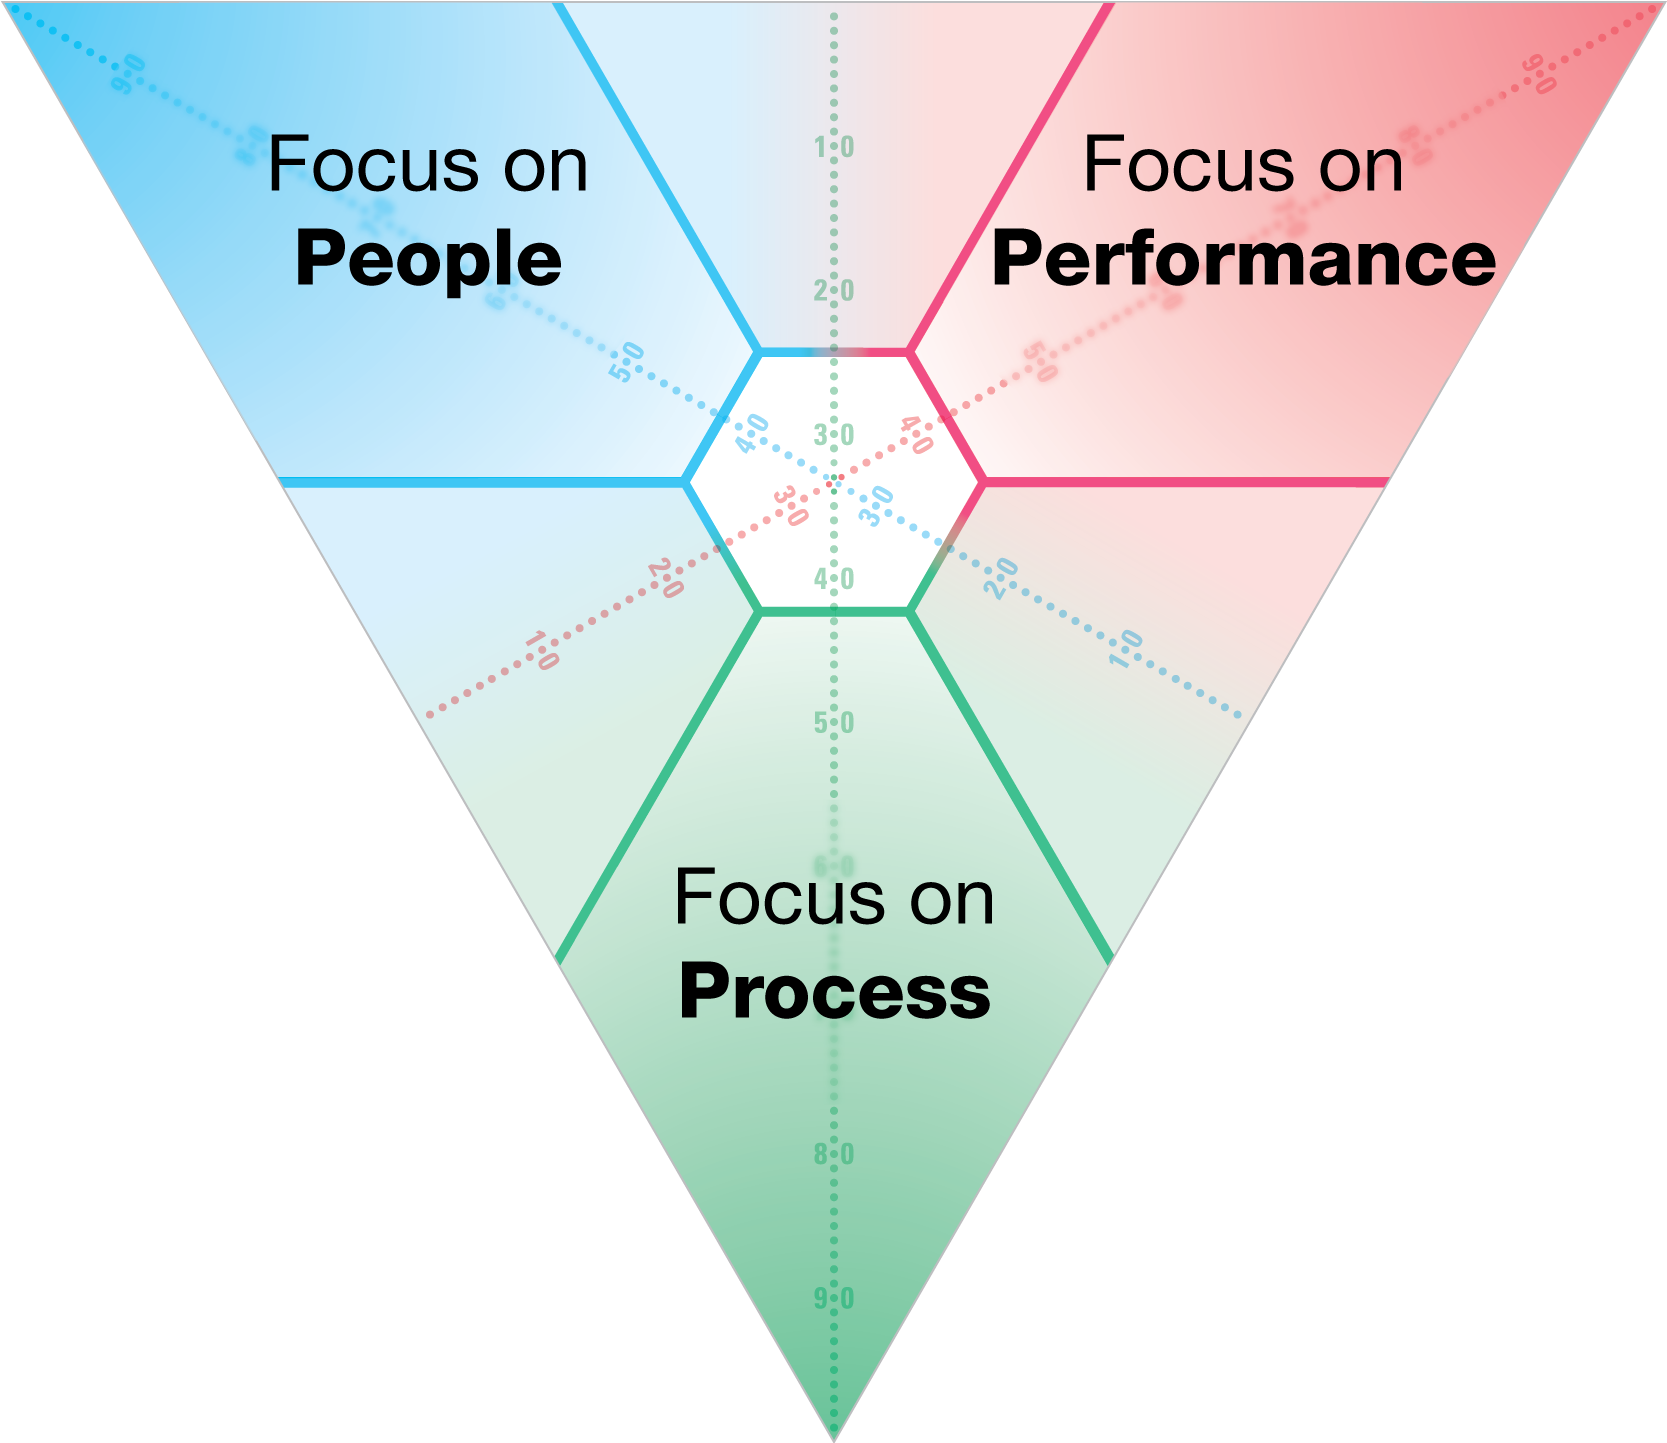 In 1971, Elias Porter introduced the SDI and Relationship Awareness Theory to the world. His theory focuses on personal strengths and their underlying motivations as the key to understanding people and improving relationships. The SDI is the practical application of the theory and was the first personality assessment to use colours.